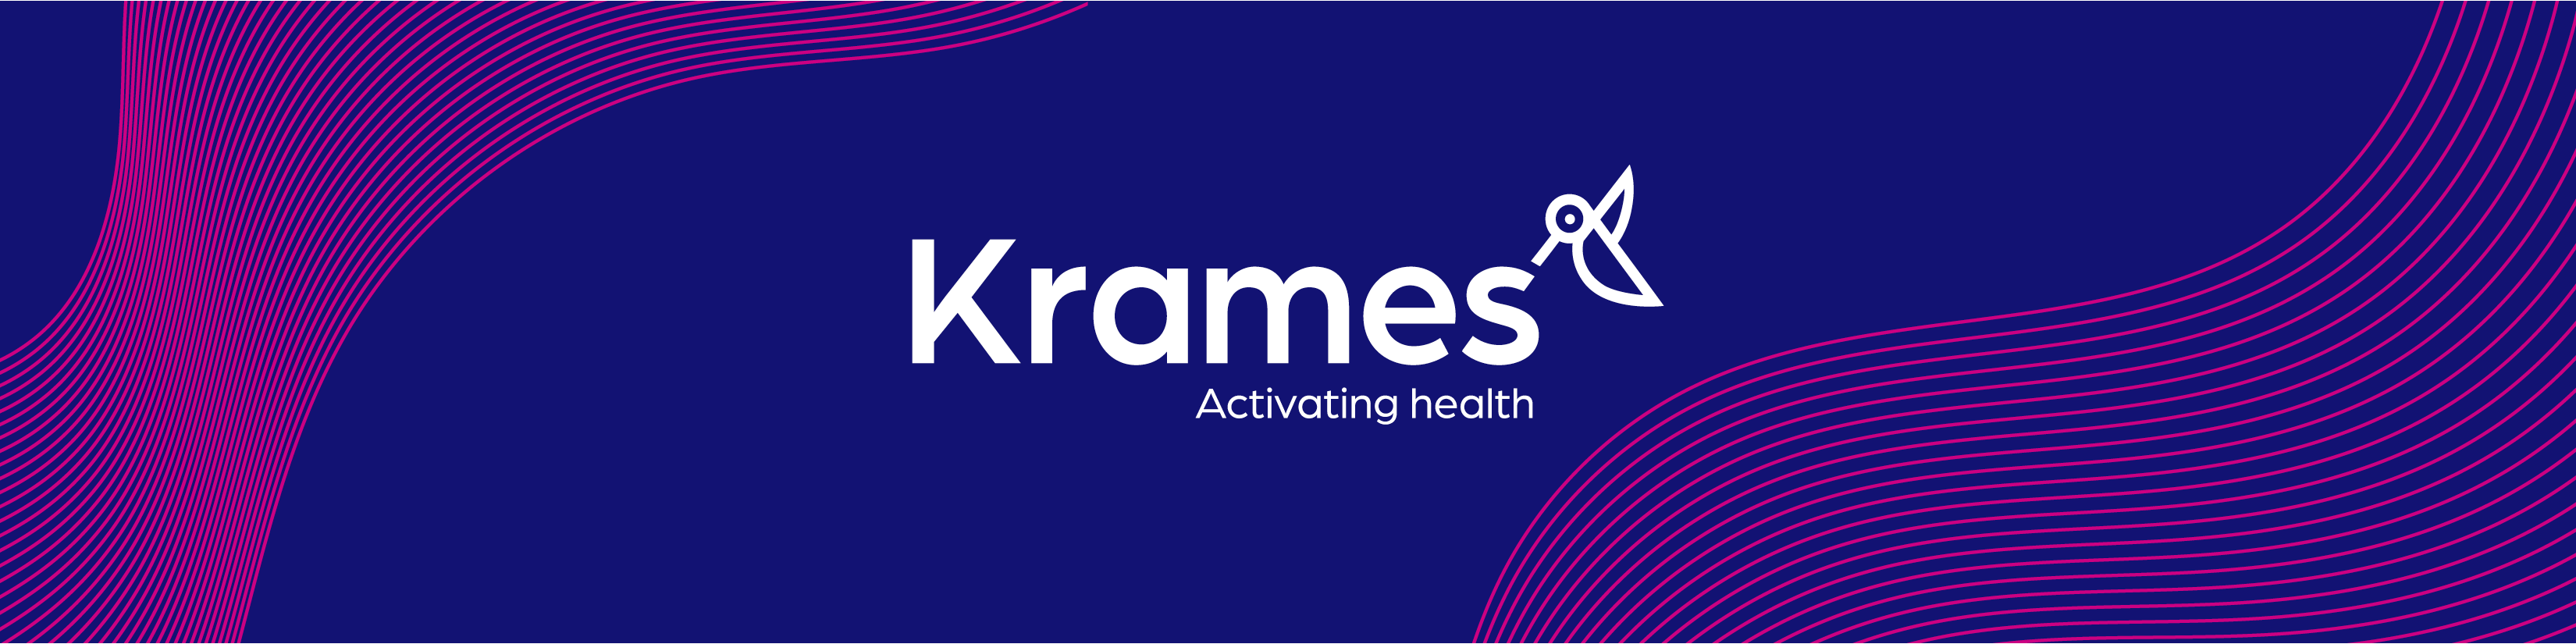 Krames logo activating health